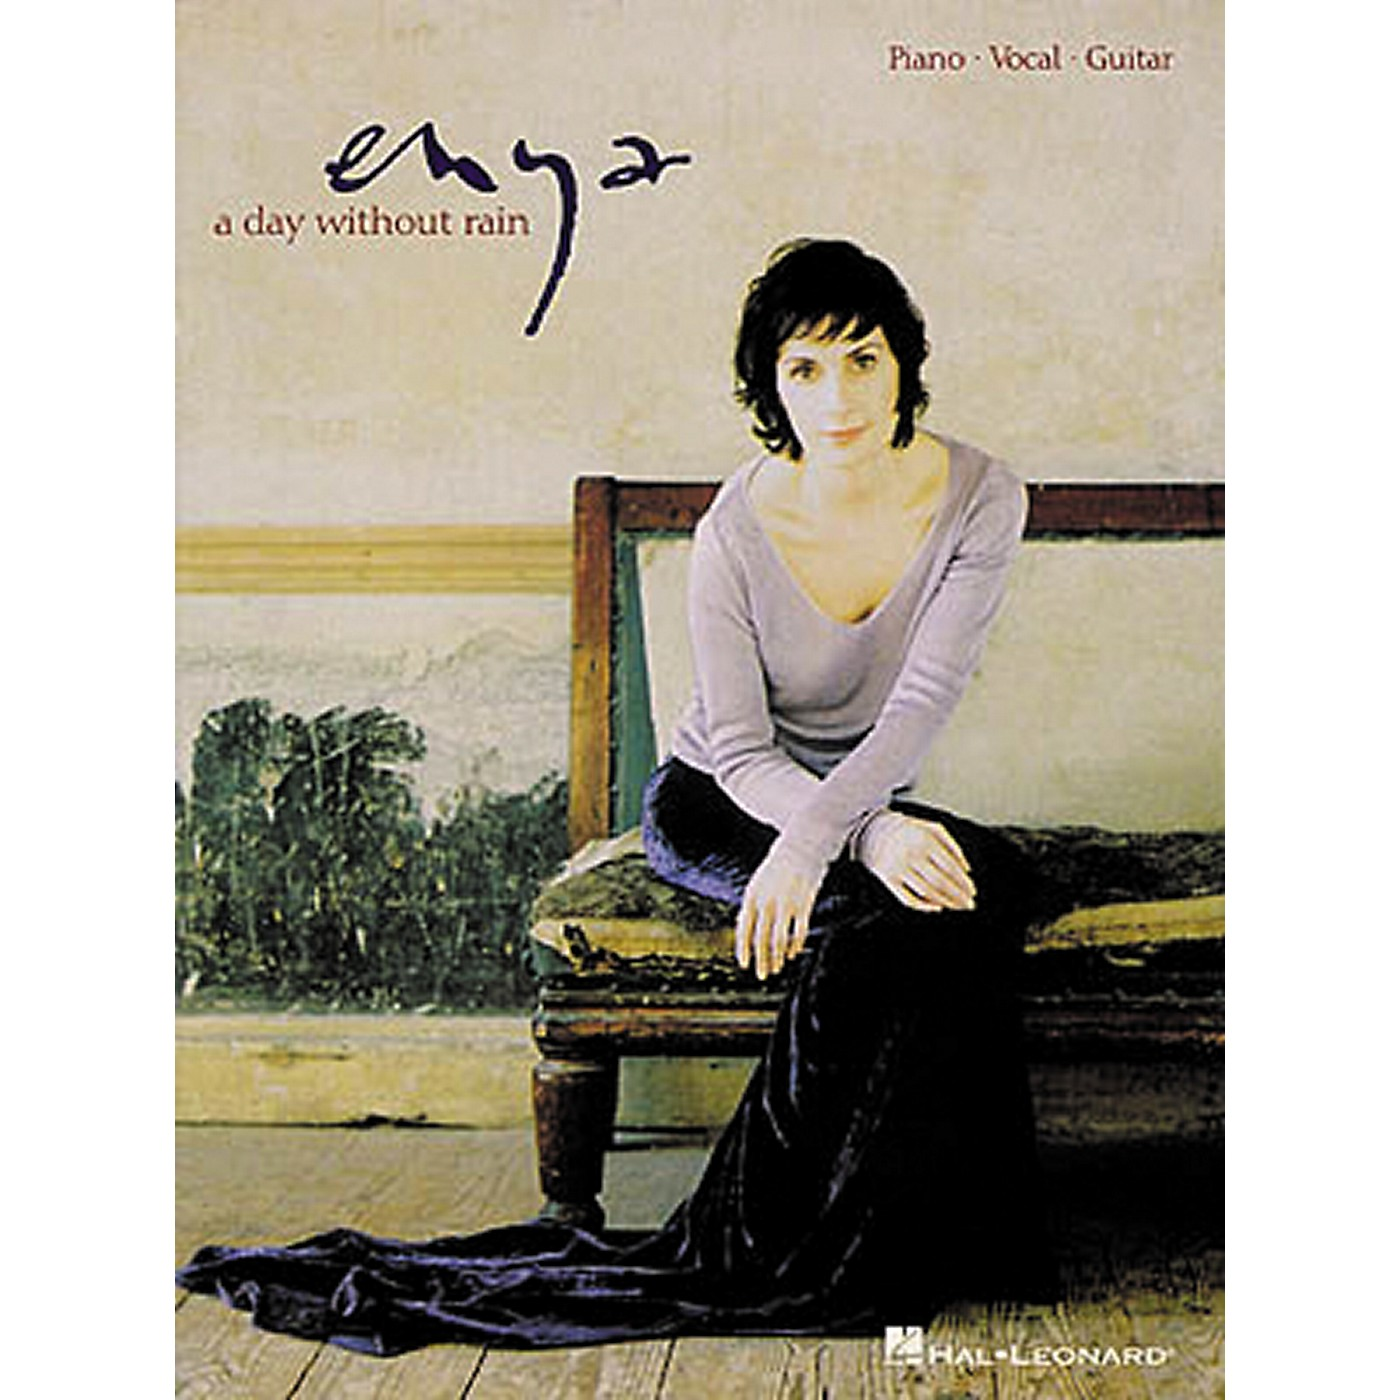 Hal Leonard Enya - A Day Without Rain Piano, Vocal, Guitar Book thumbnail